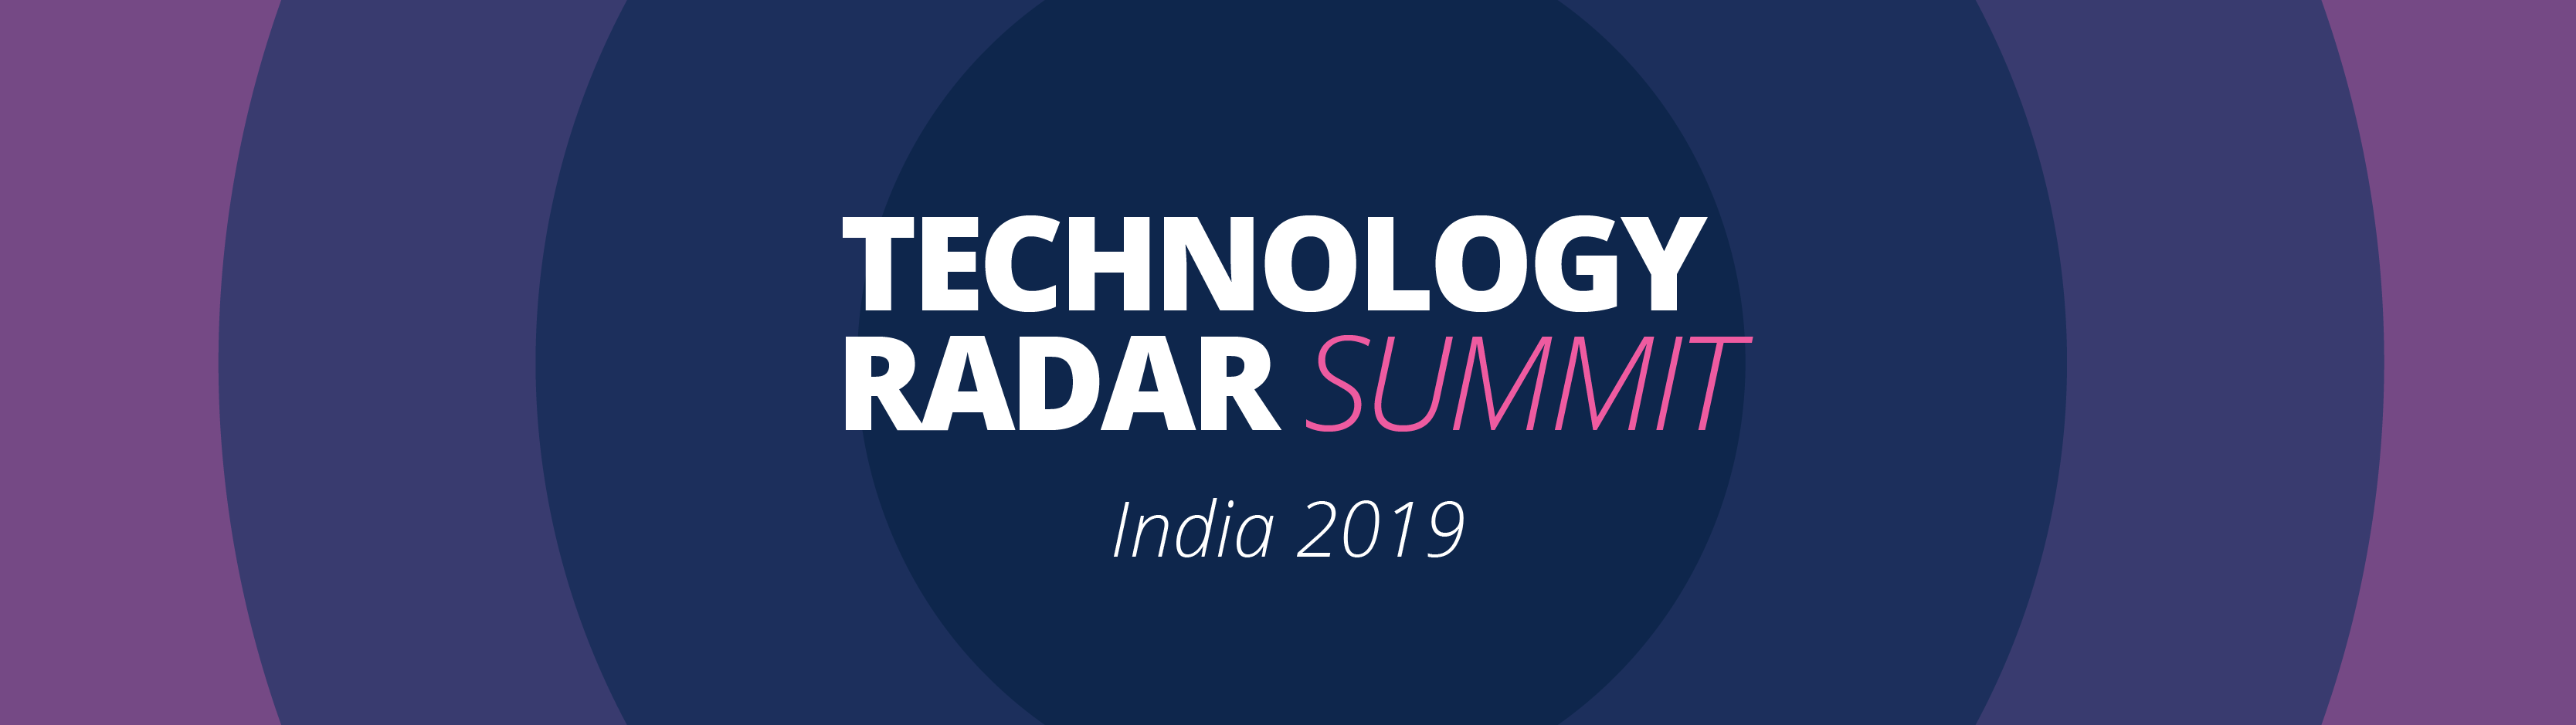 Tech Radar Summit India 2019